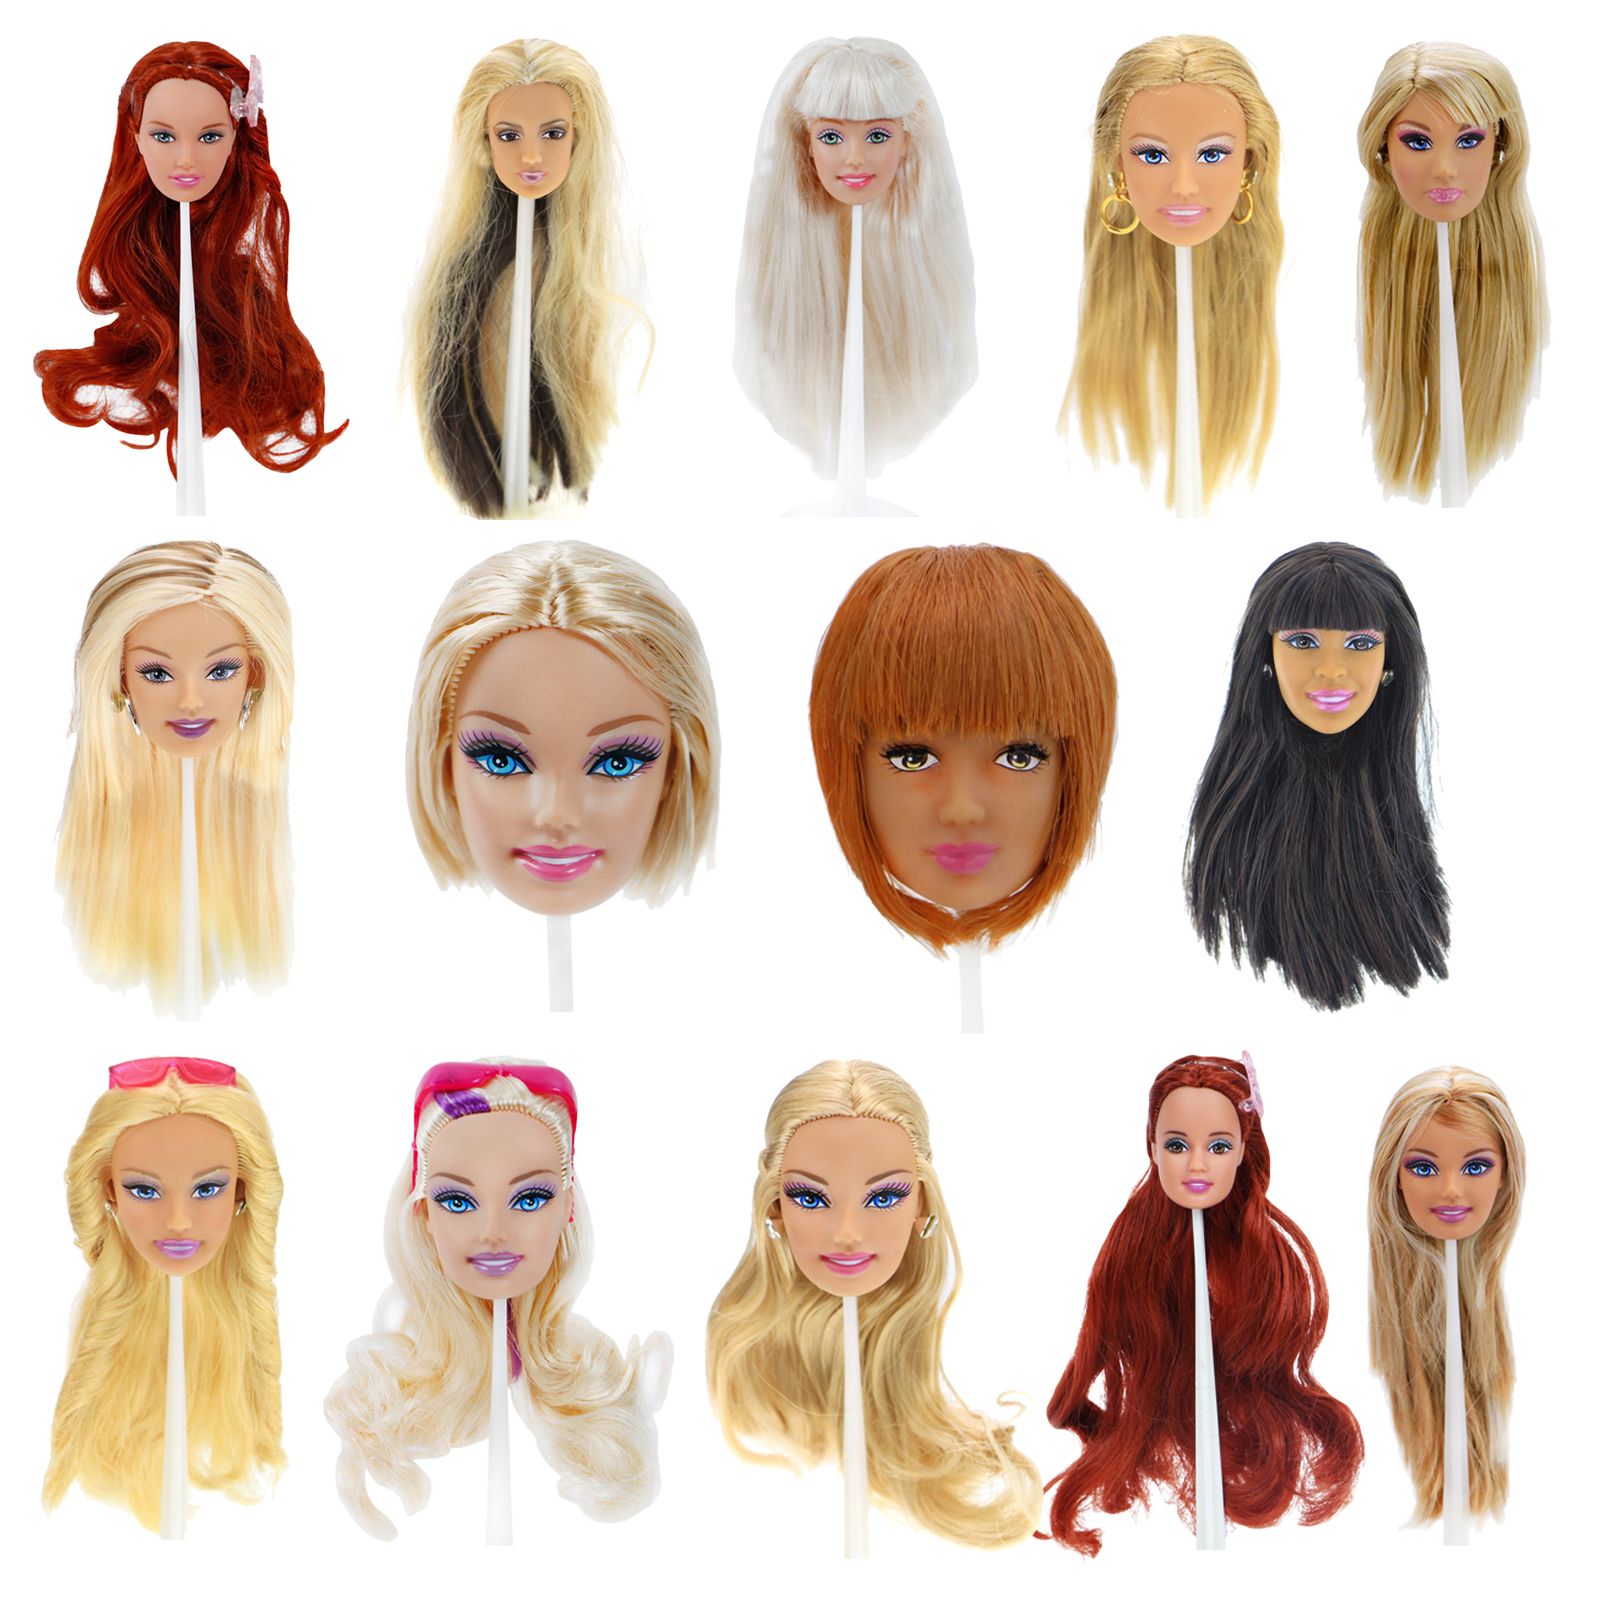 Excellent Quality Doll Head Different Face Straight Curly Hair With Fashion Random Earrings DIY Accessories For 12